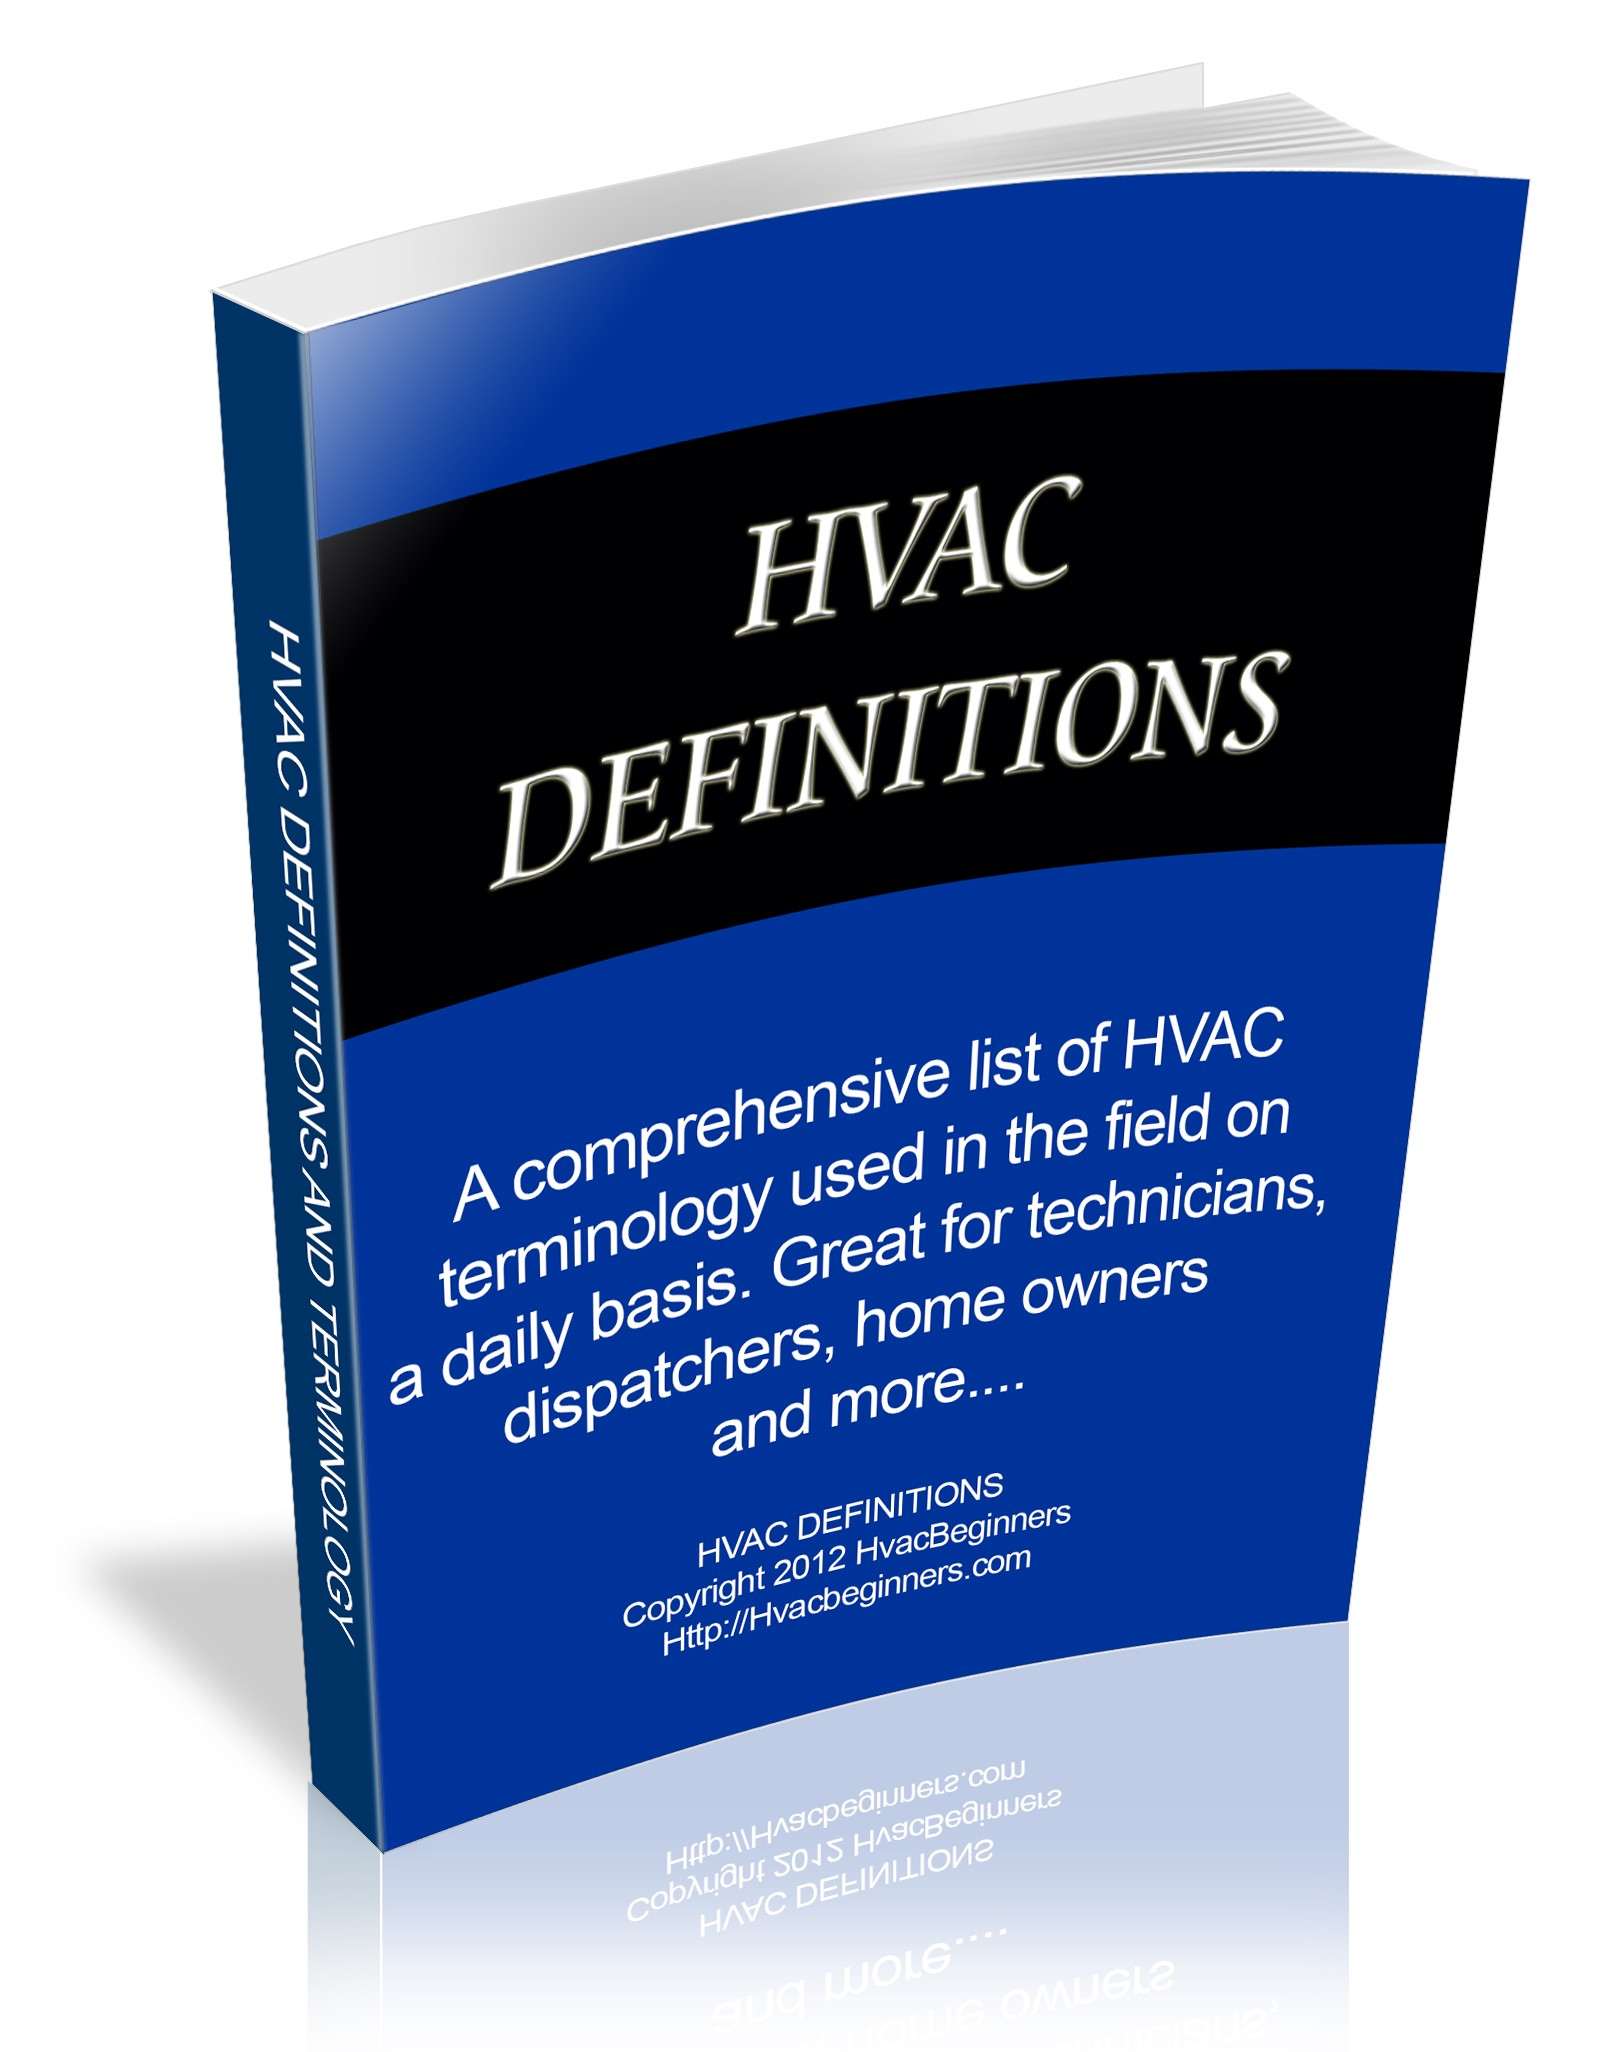 hvac r definitions What does an hvac technician do here is career information including earnings, training troubleshoot and repair hvac/r equipment collaborate with sales and engineering to develop product definitions responsive to customer needs and market opportunities layout, design, and install low.